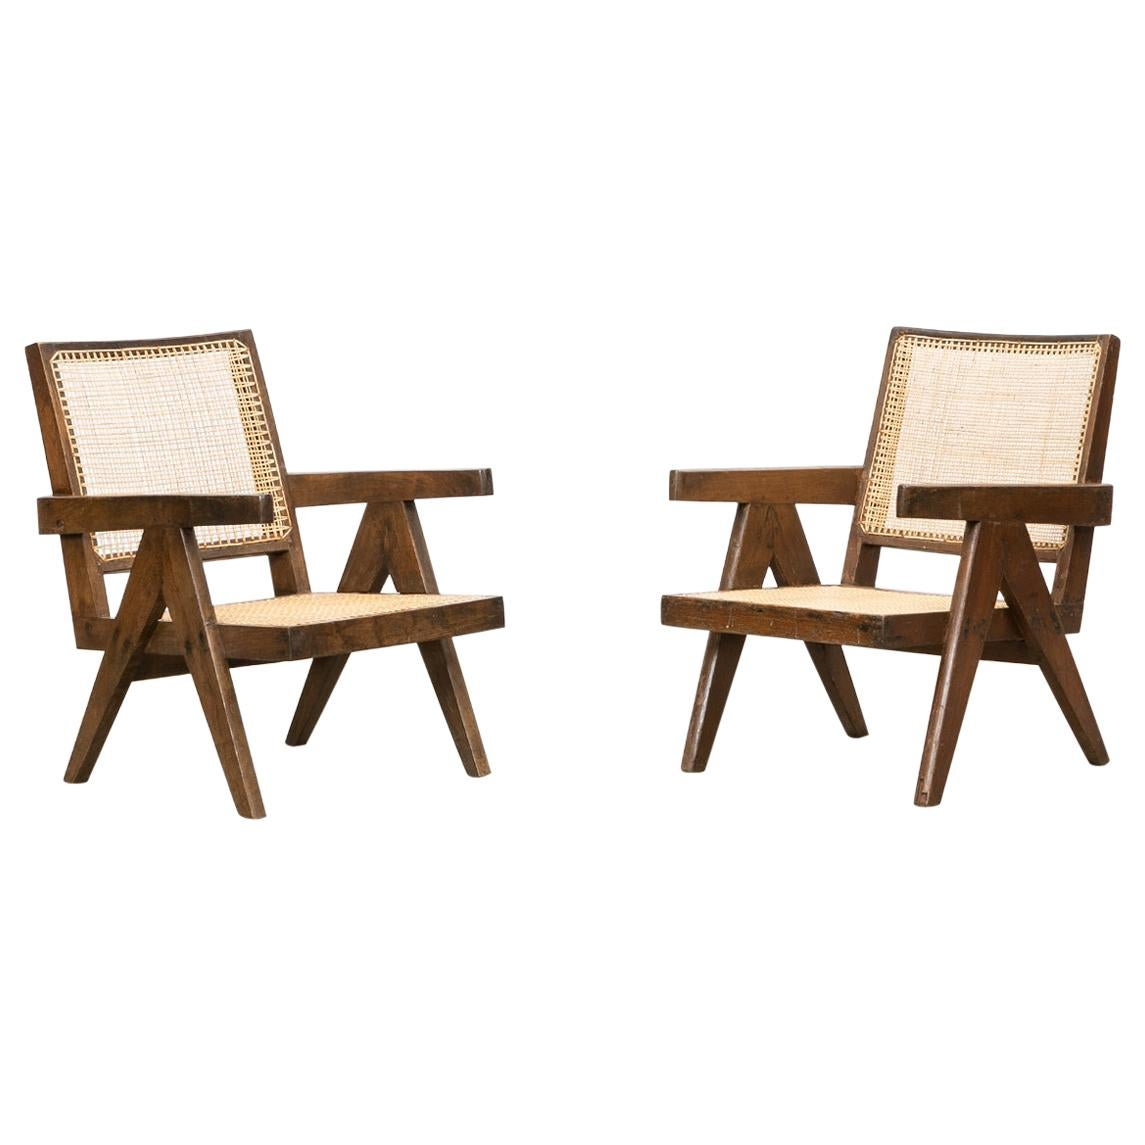 1950s Brown Wooden Teak and Cane Lounge Chairs by Pierre Jeanneret 'h'